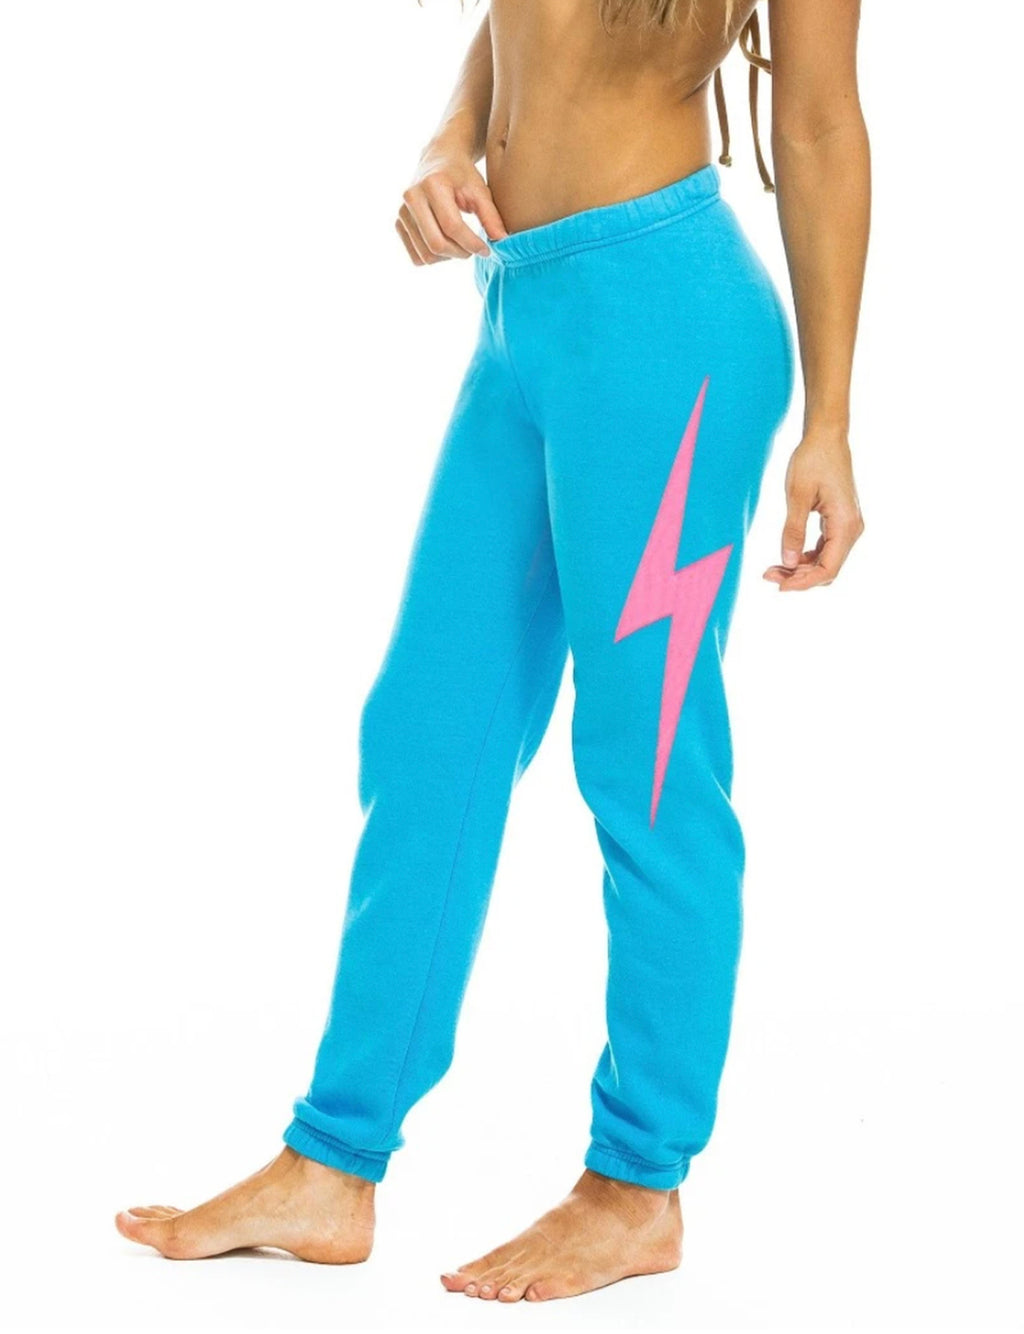 Bolt Stitch Womens Sweatpant in Neon Blue